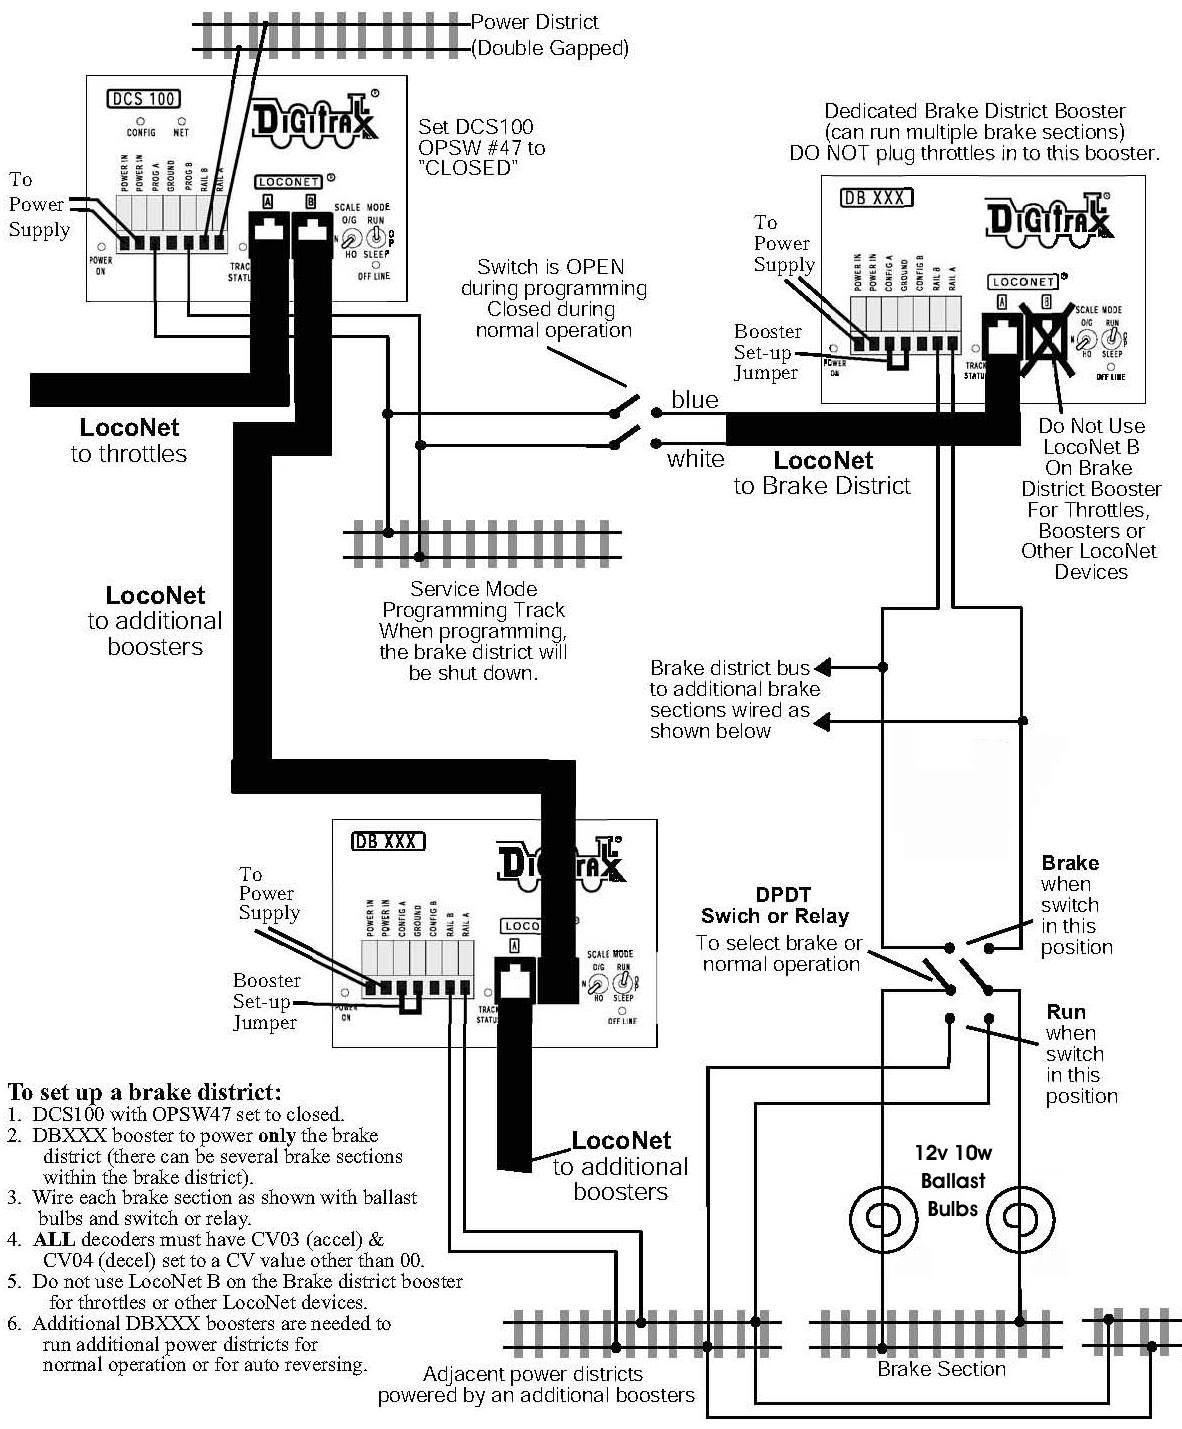 Incredible Wiring Diagram Further Digitrax Dcc Wiring Diagrams Likewise Wiring Wiring Cloud Venetbieswglorg